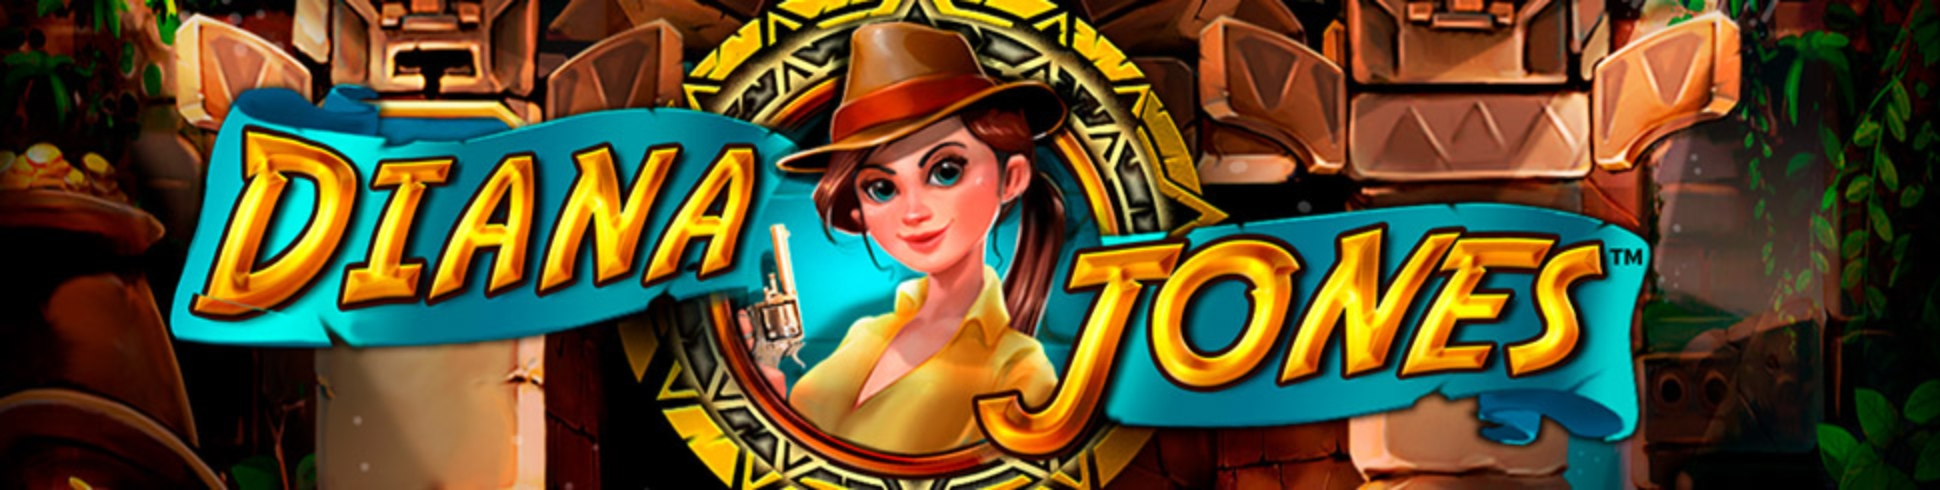 The Diana Jones Online Slot Demo Game by Mobilots